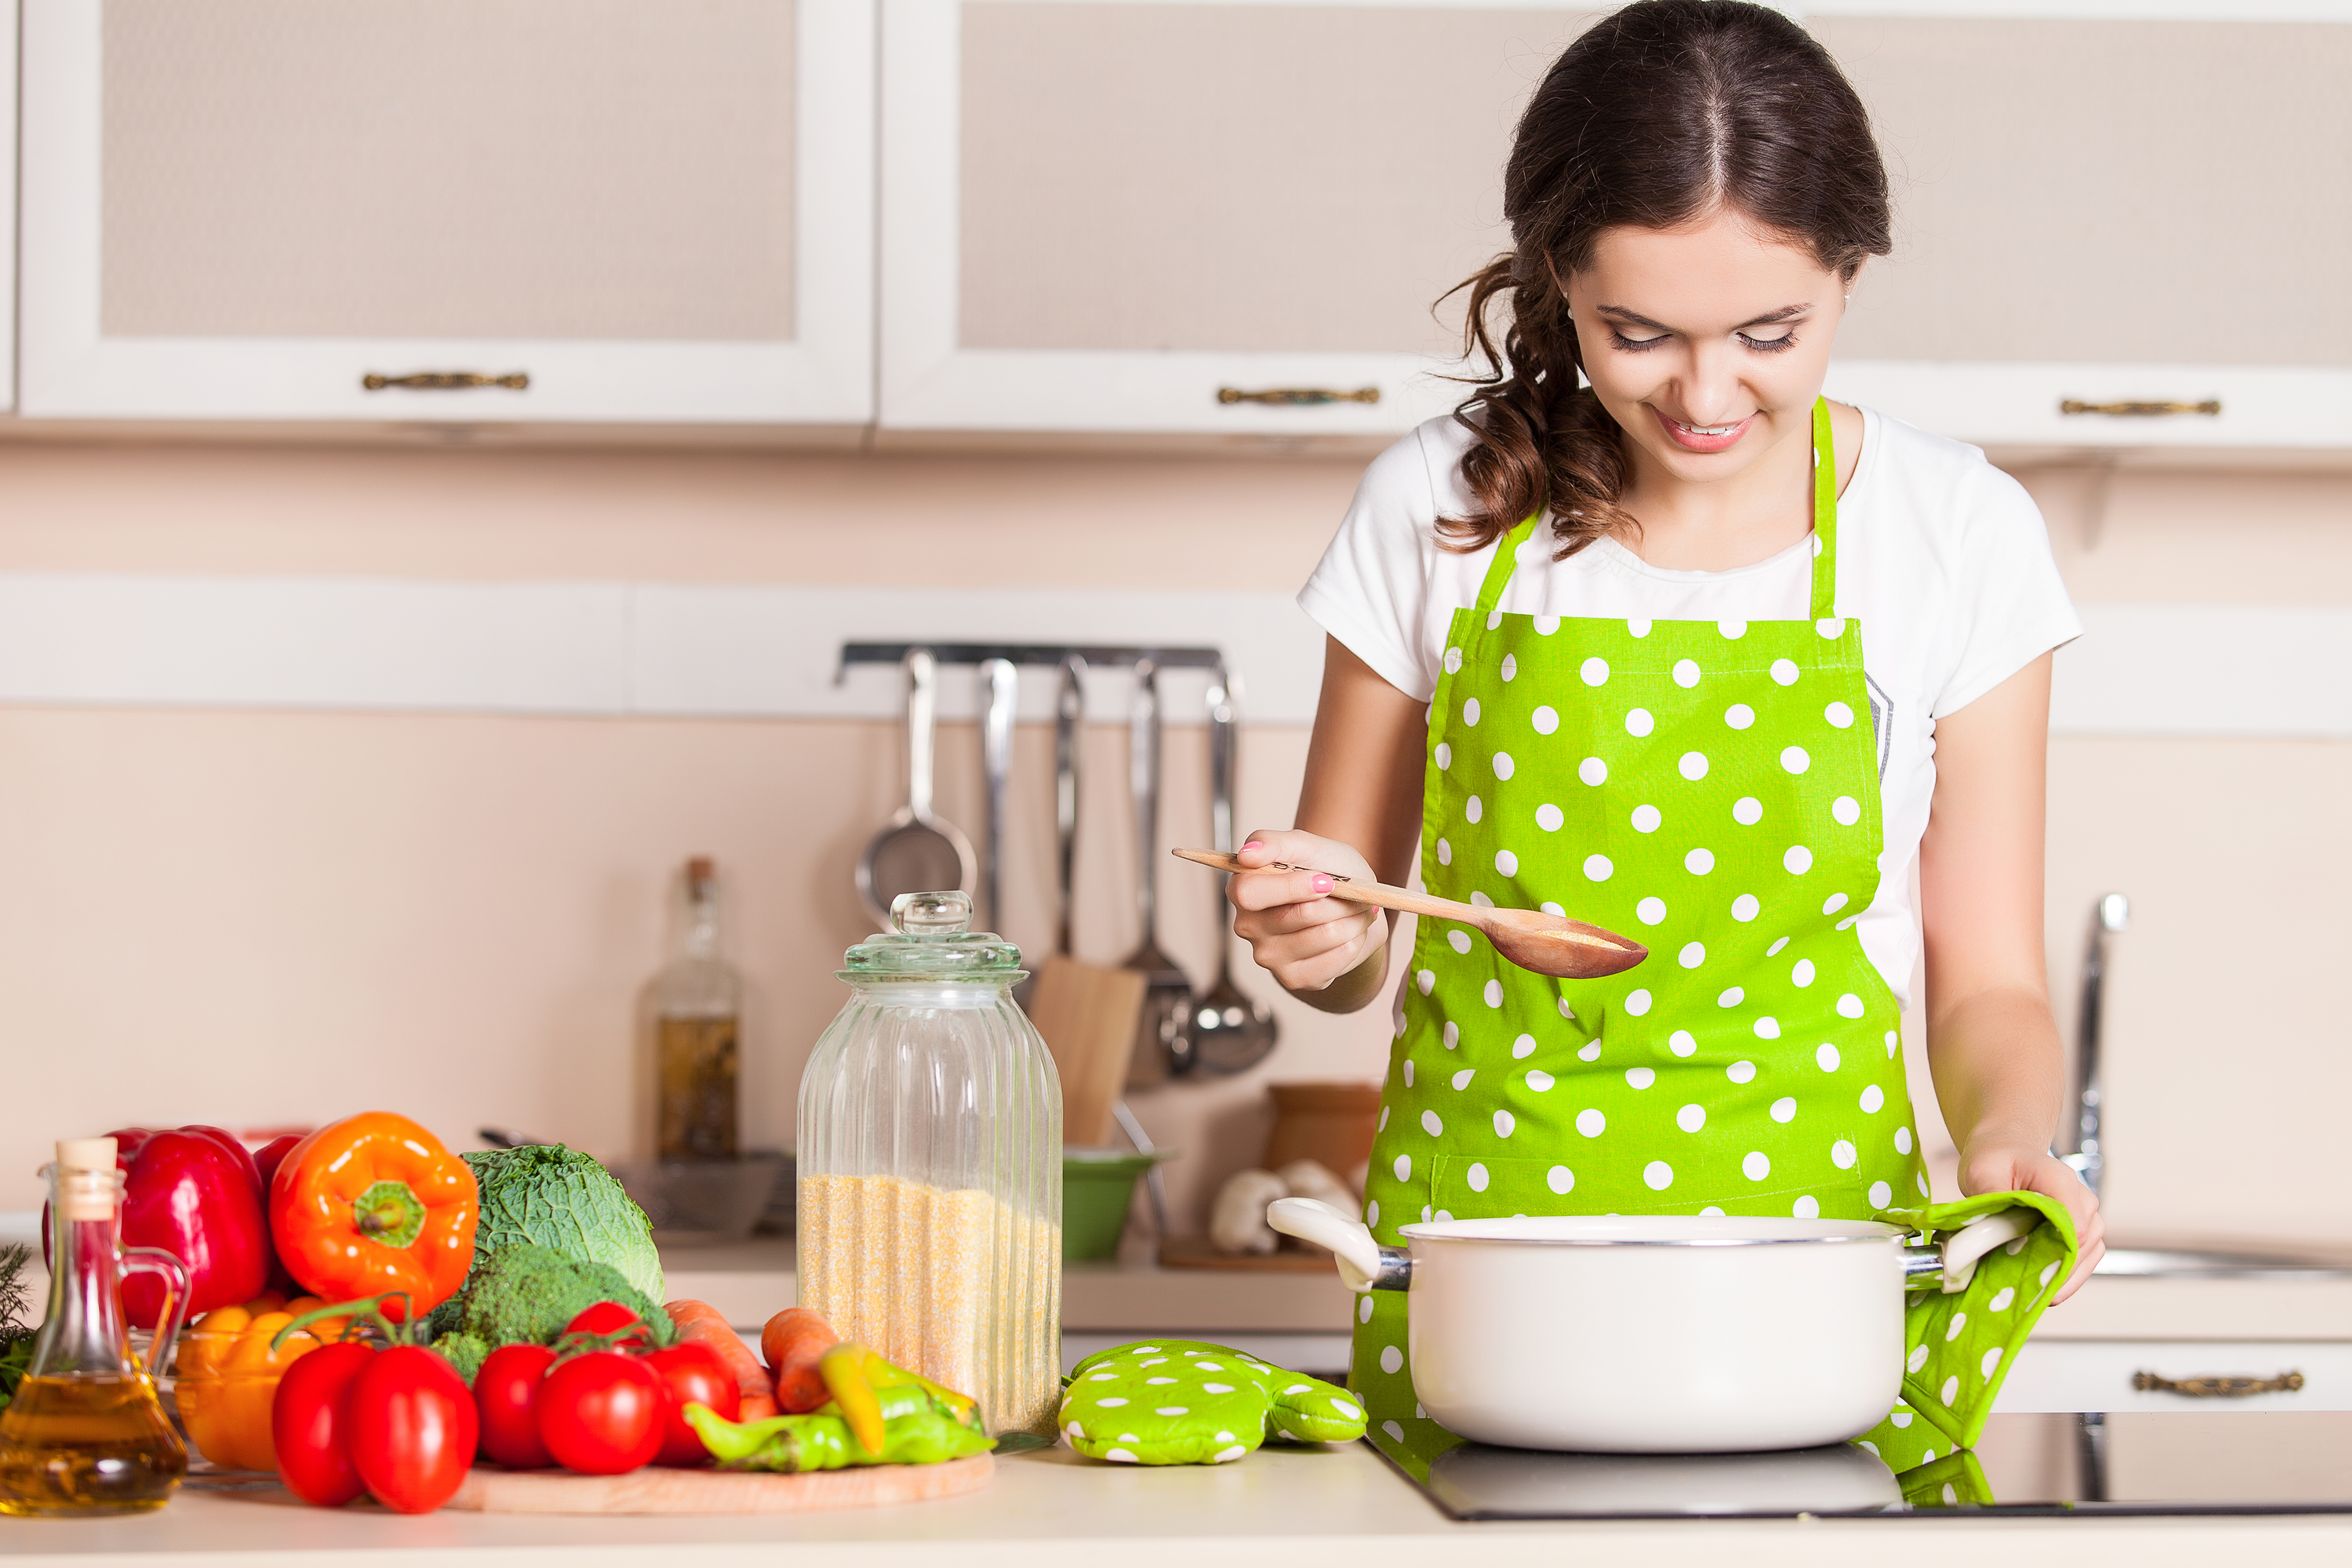 Easy Tips for Making Healthier, Faster Meals For Your Family